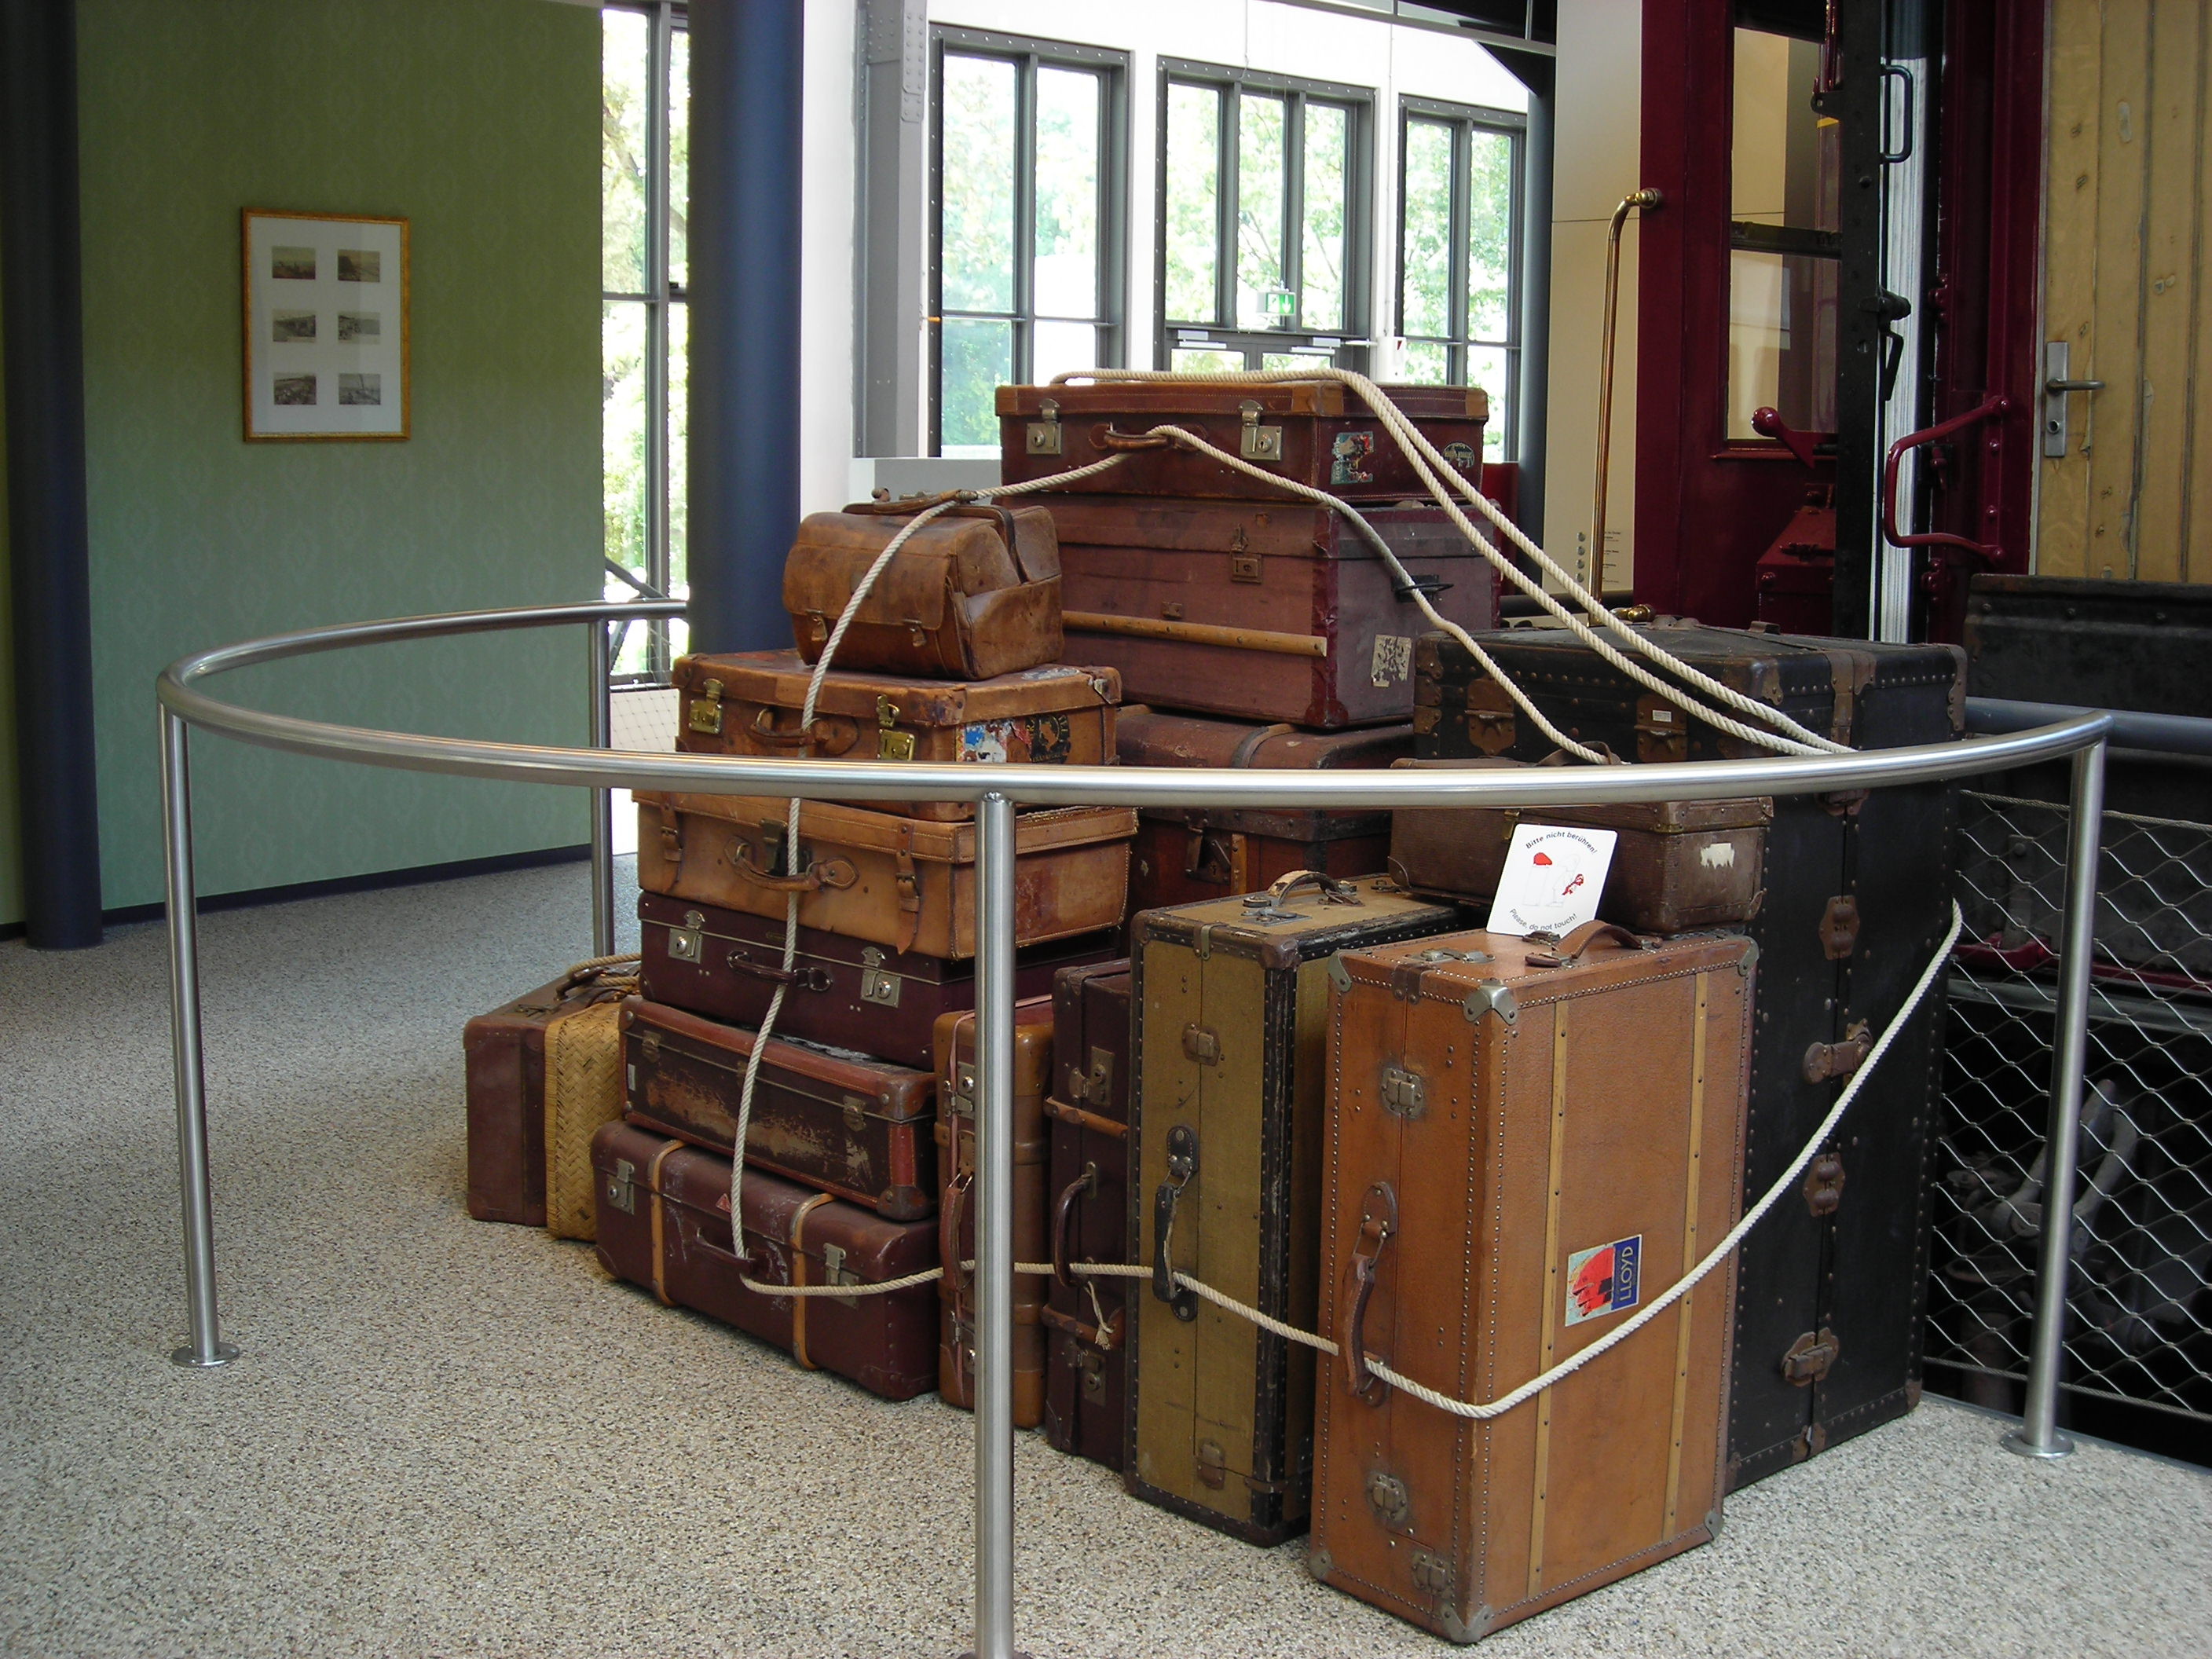 Old Suitcases Fileold Suitcasesjpg Wikimedia Commons